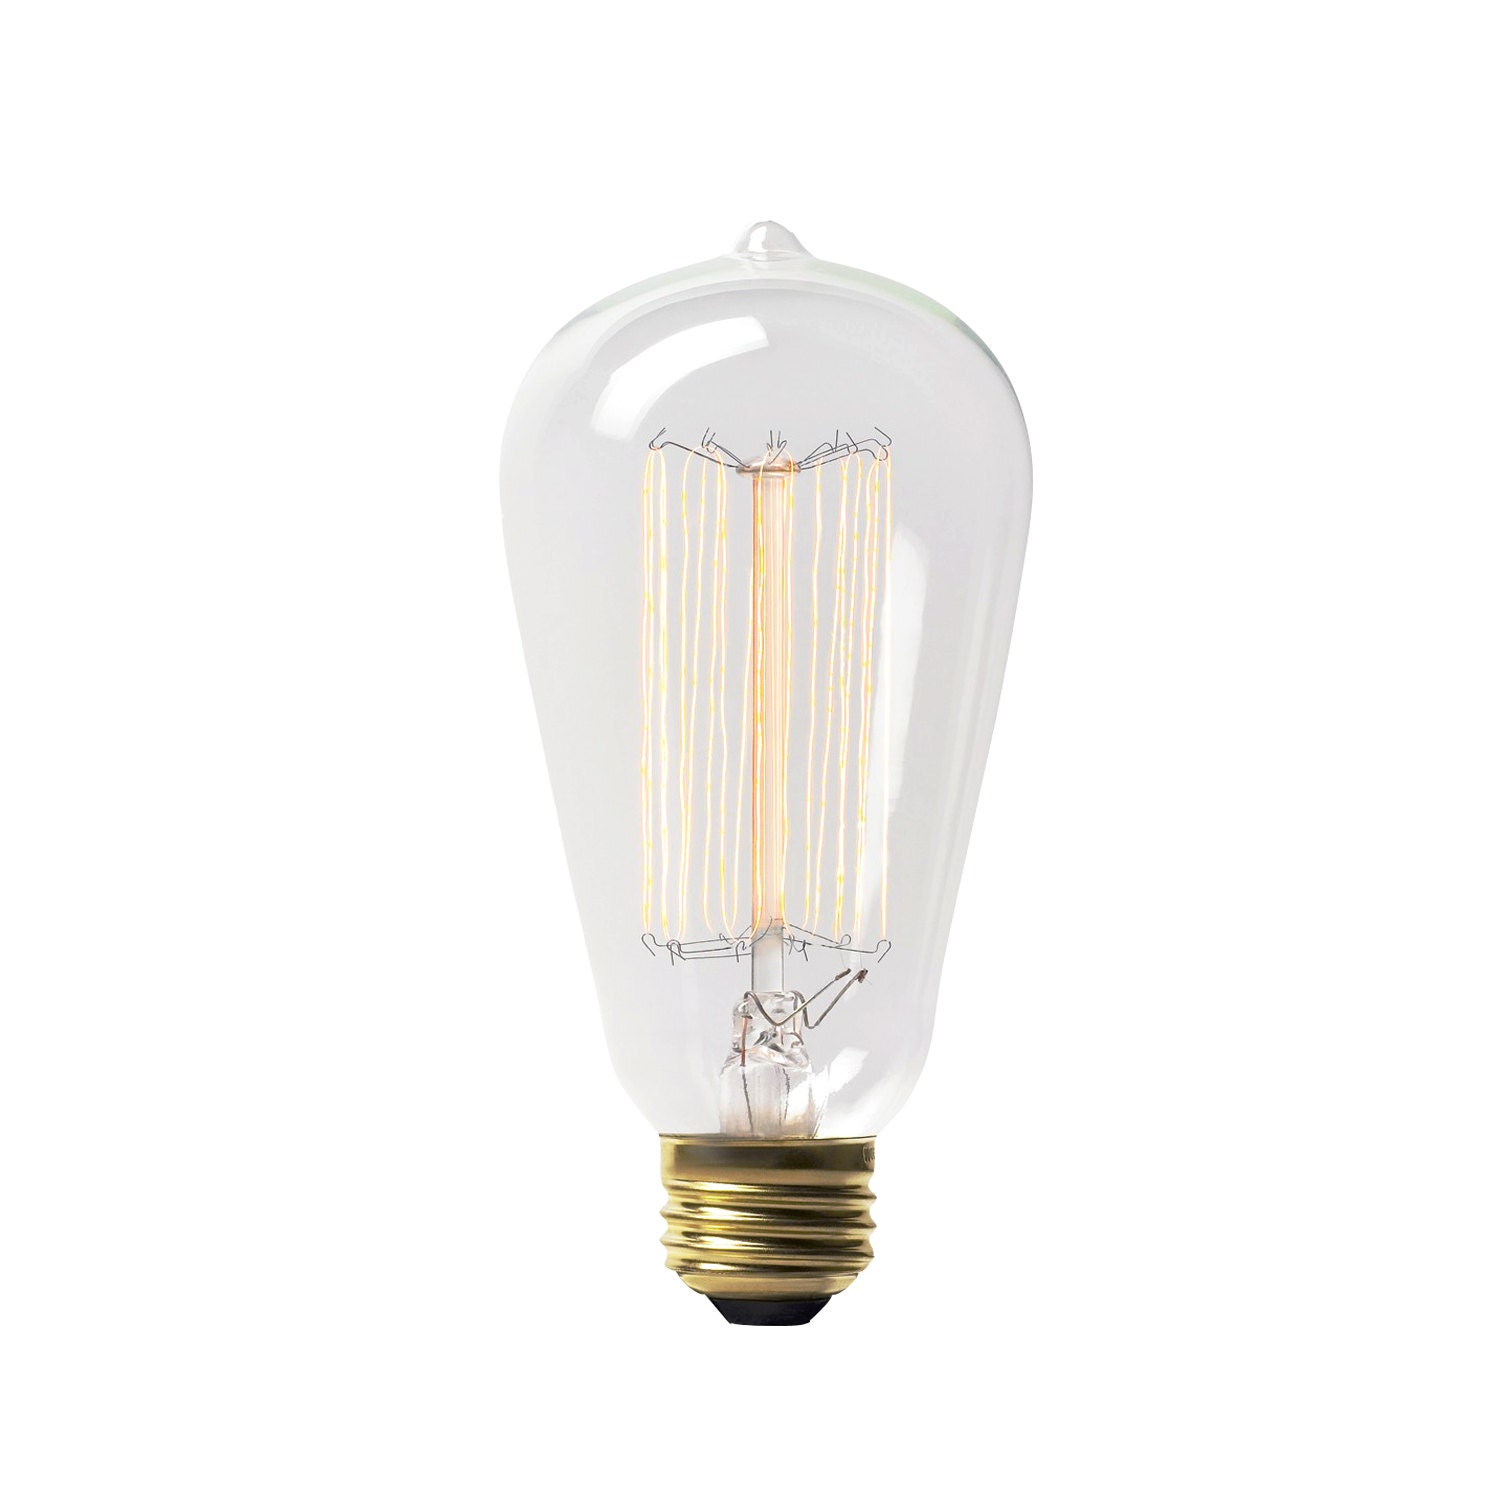 60w Vintage Style Incandescent Edison Light Bulb By Overspraykc